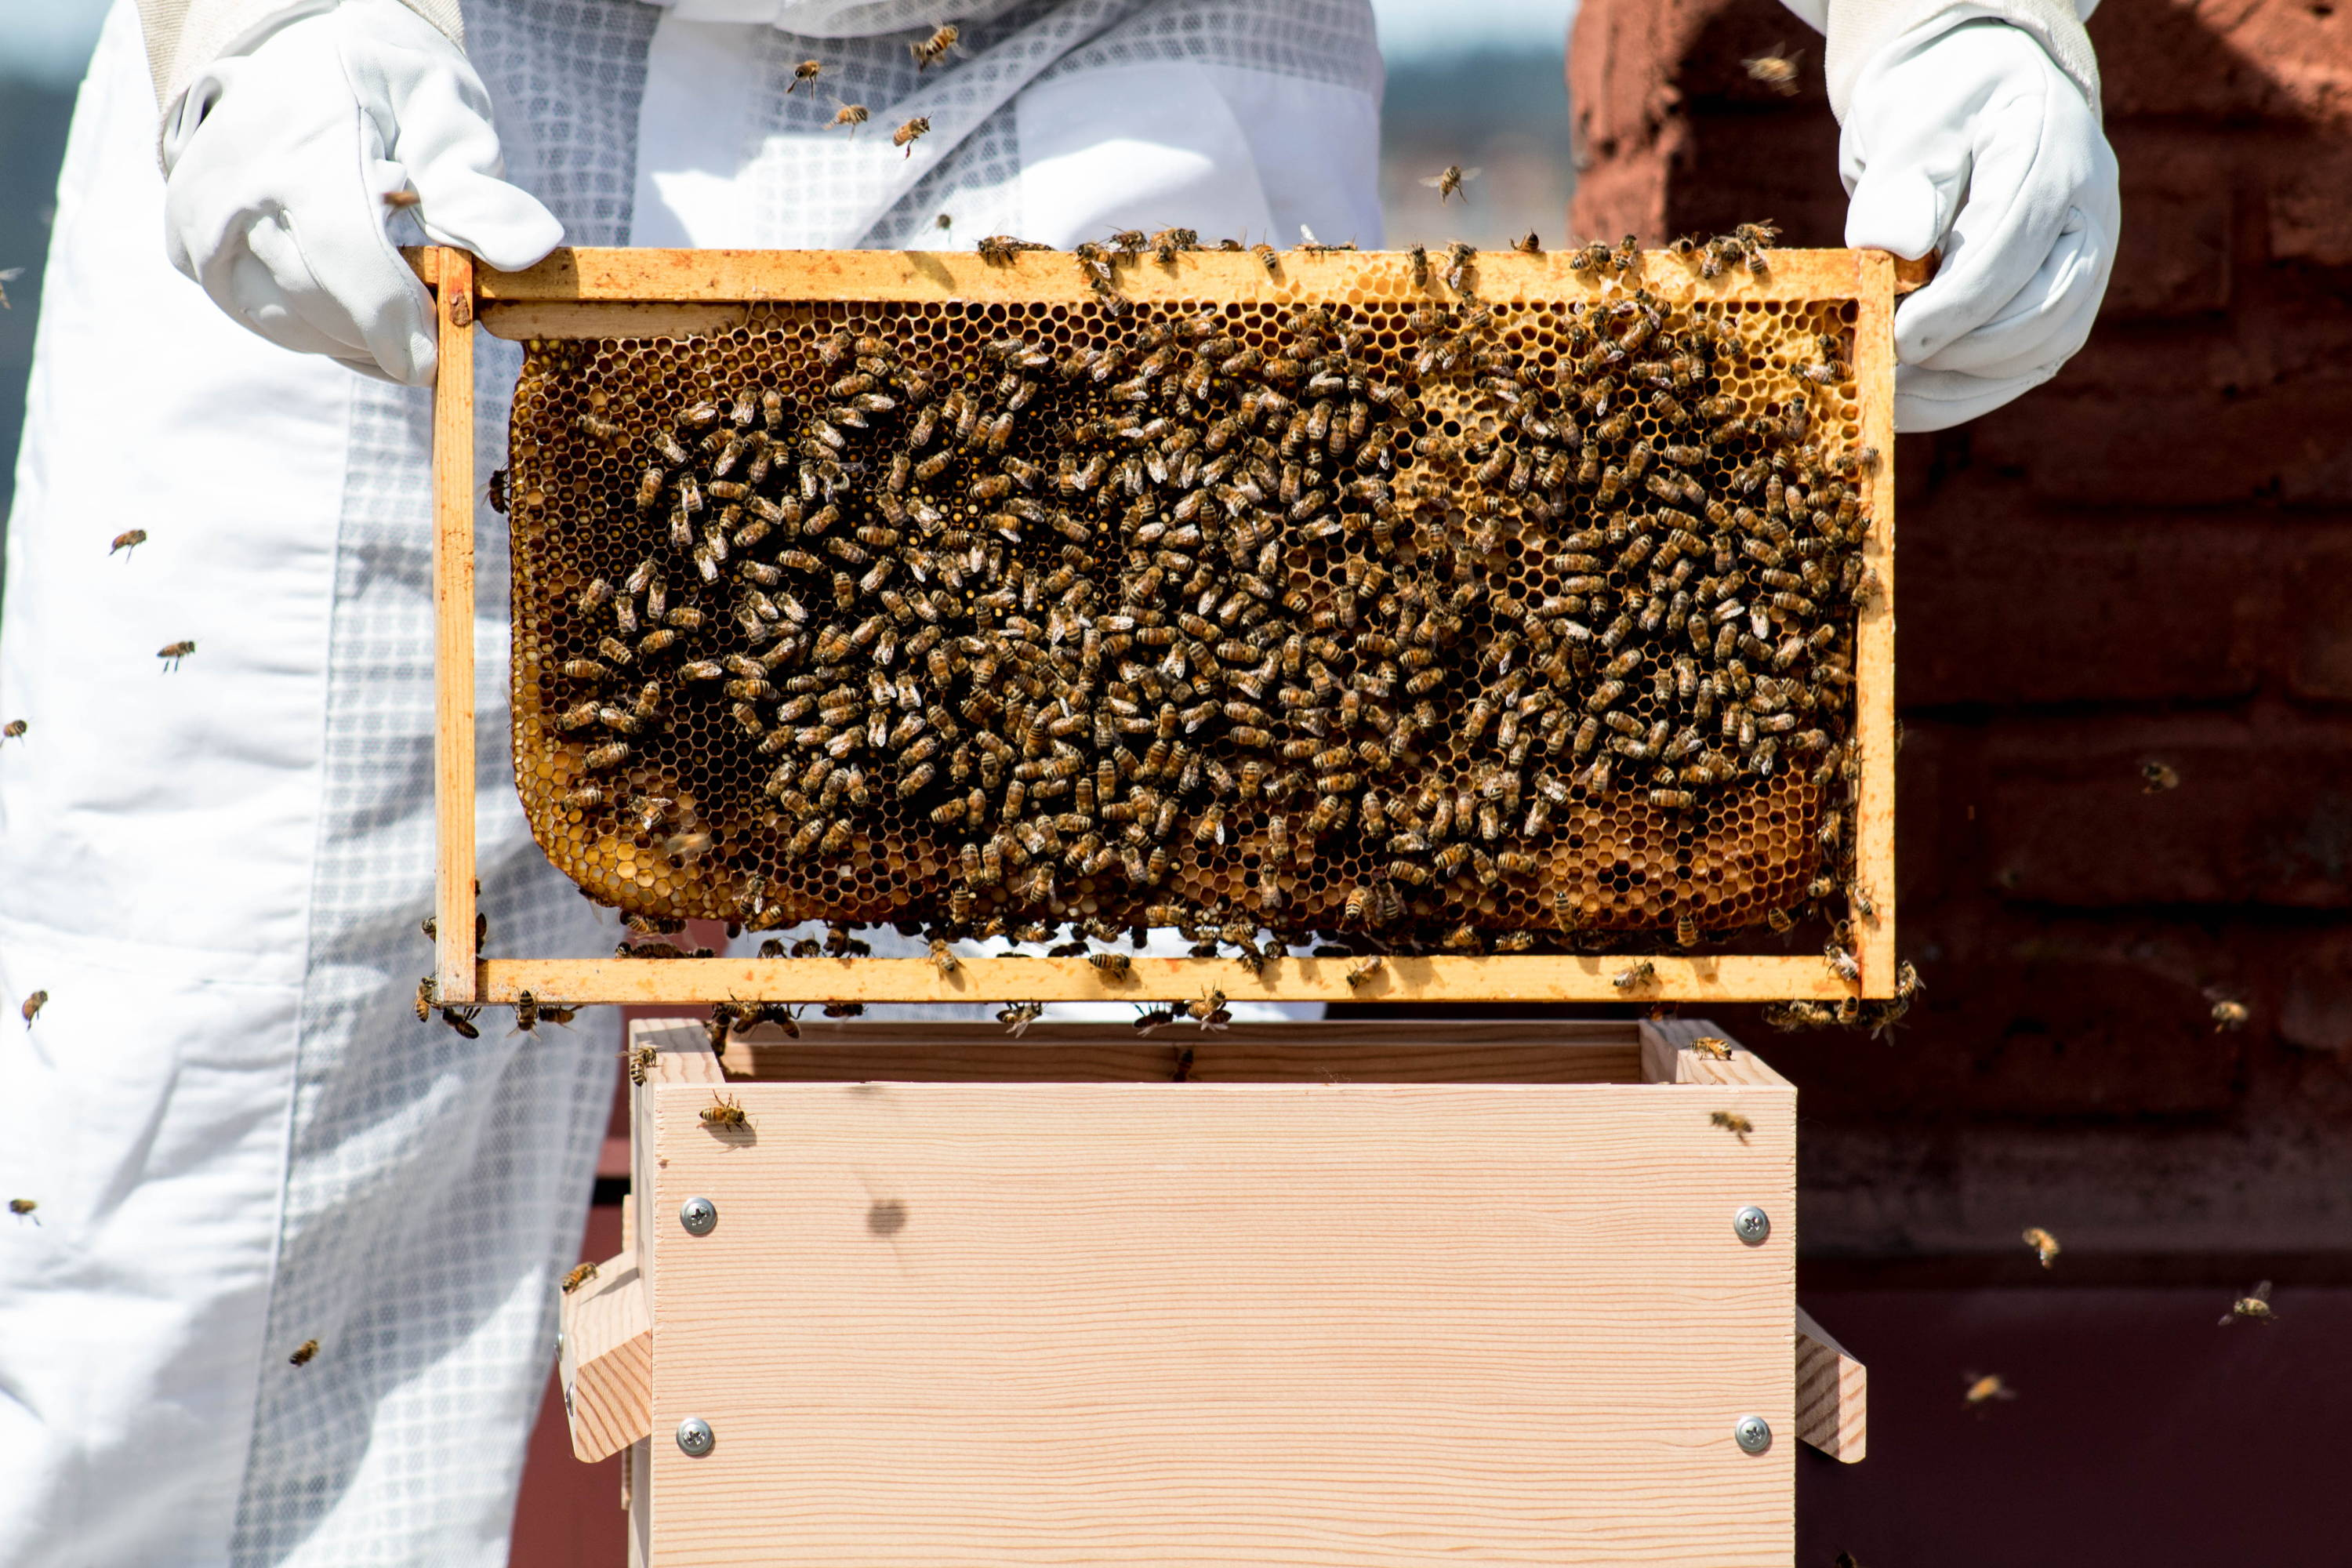 Beekeeping for beginners: where to start Basic tips 30